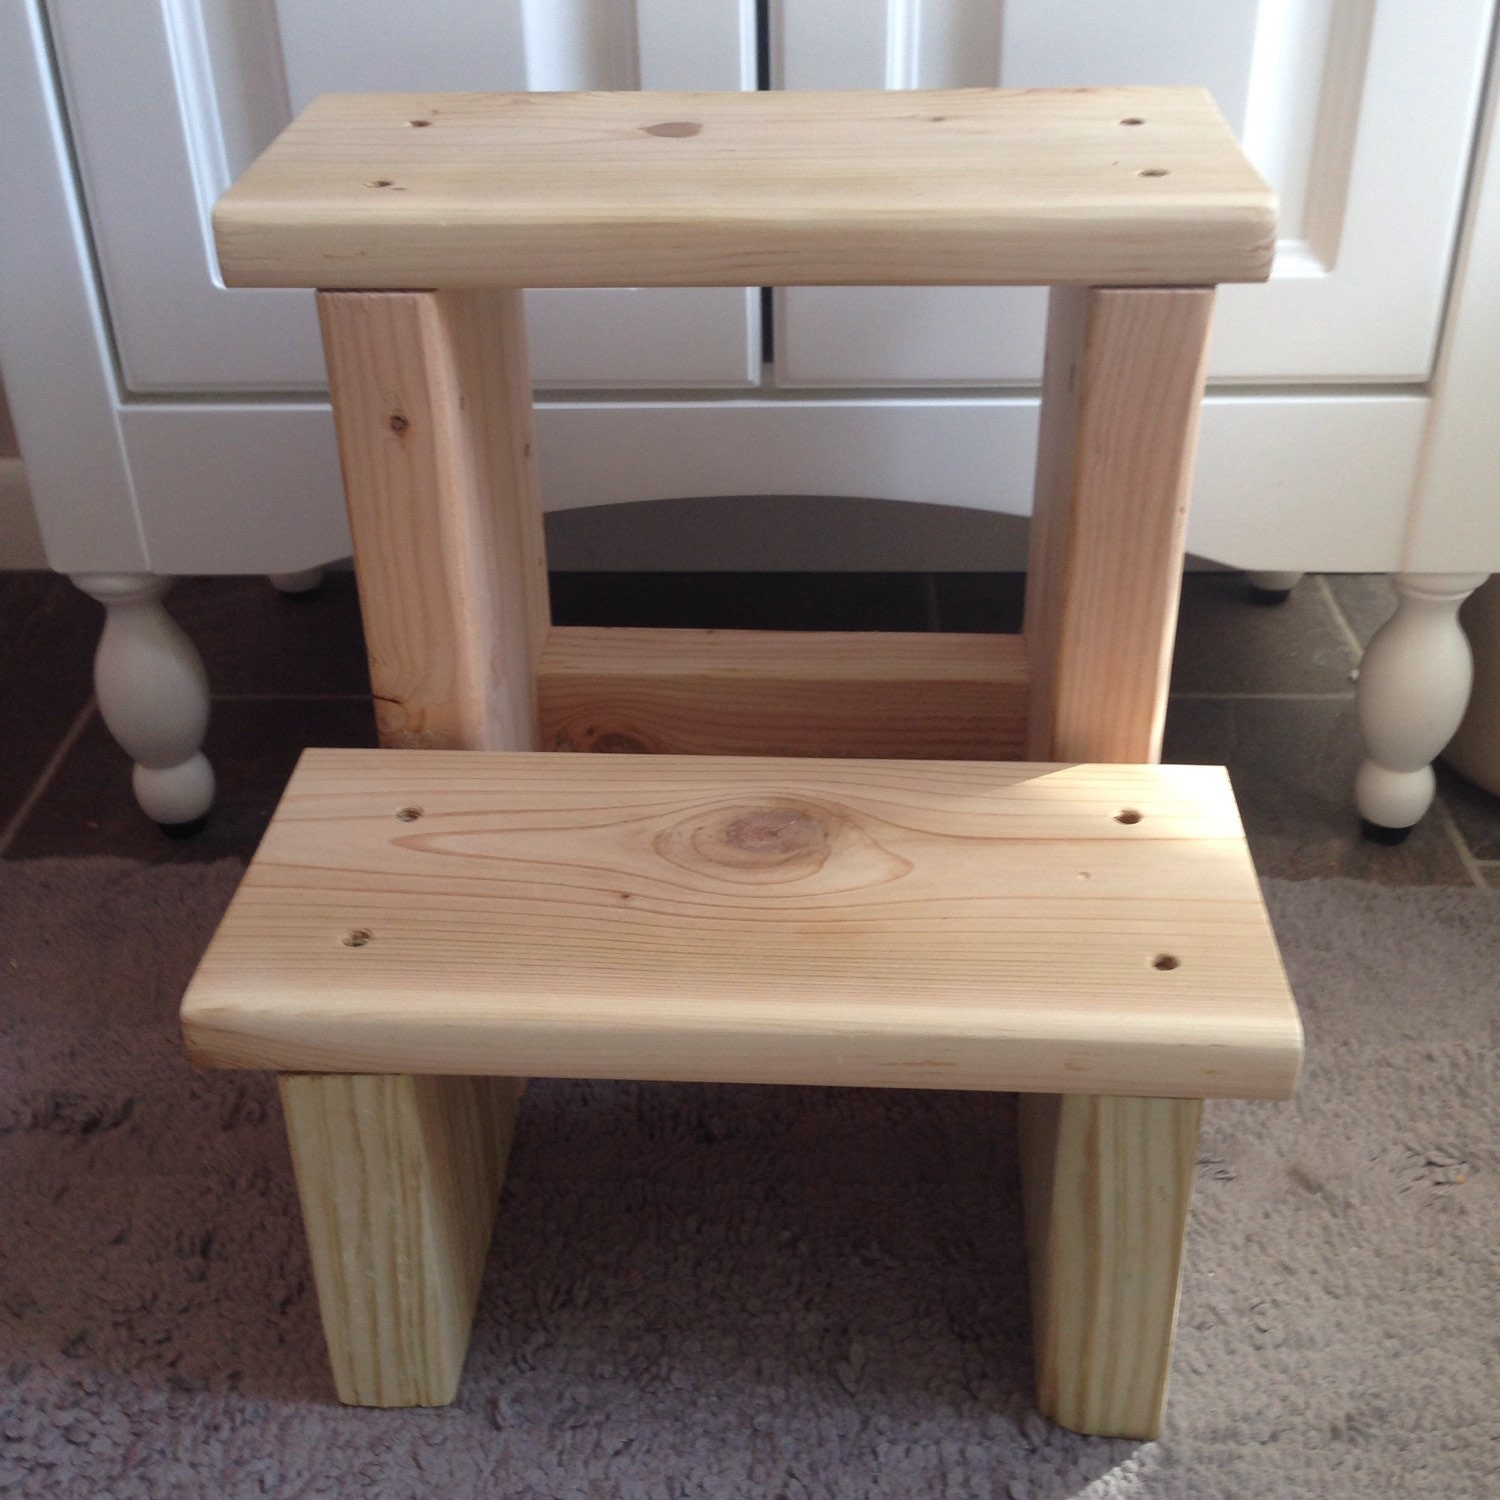 Wood step stool tall by etfinspirations on etsy